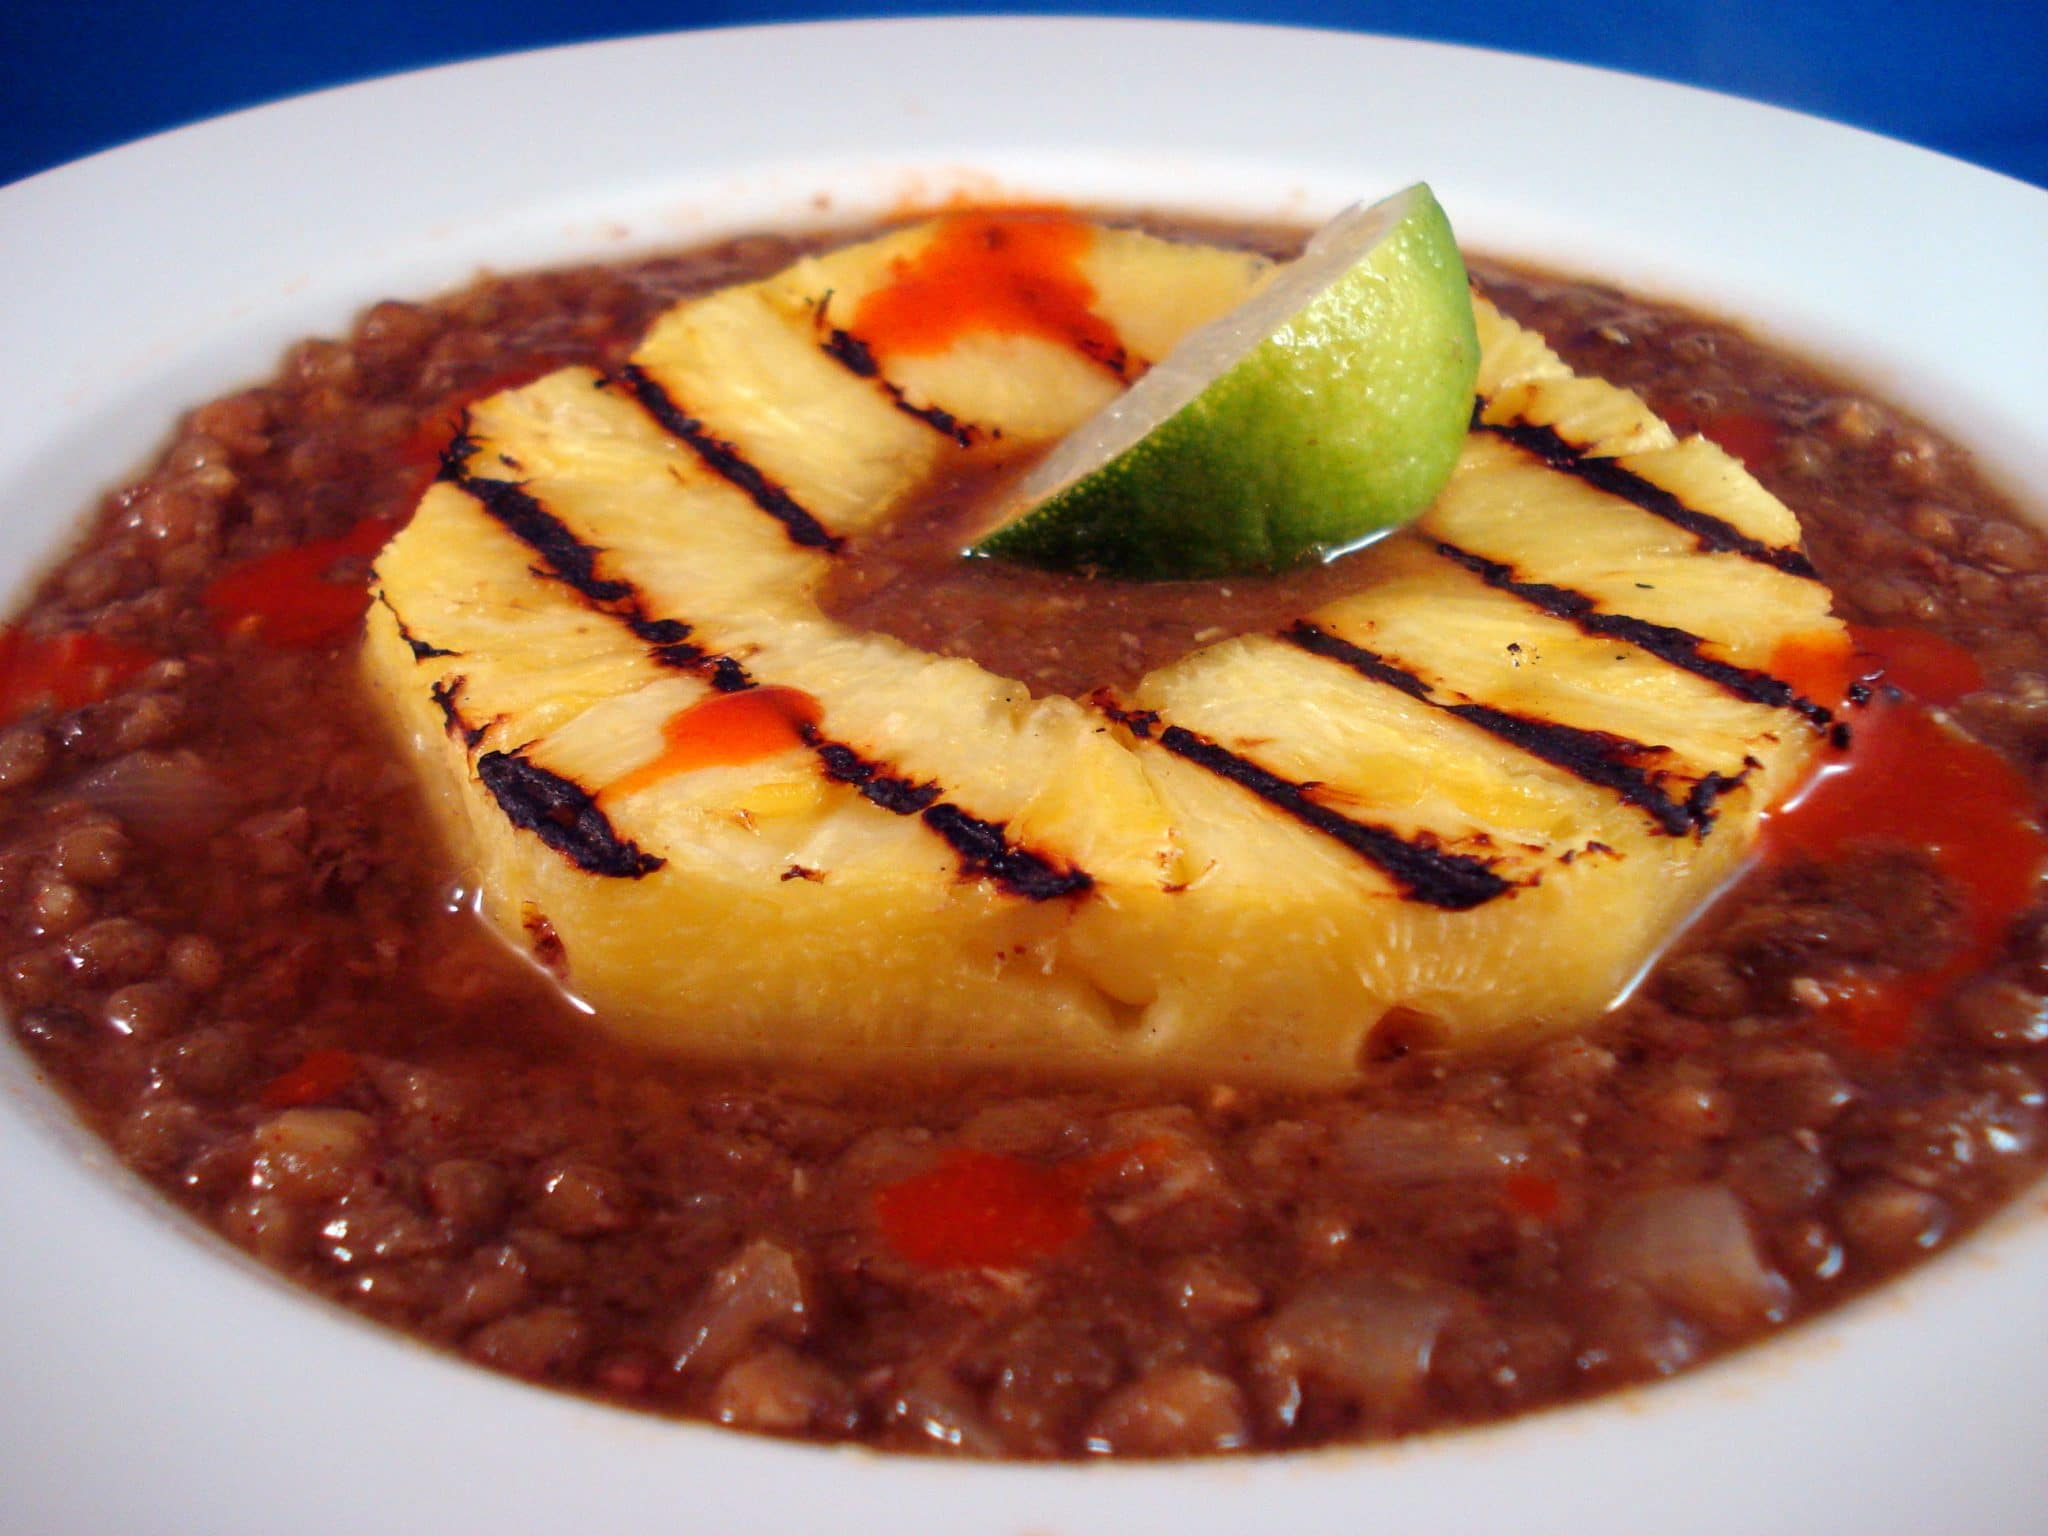 Bowl of lentil soup with grilled pineapple on top, with lime